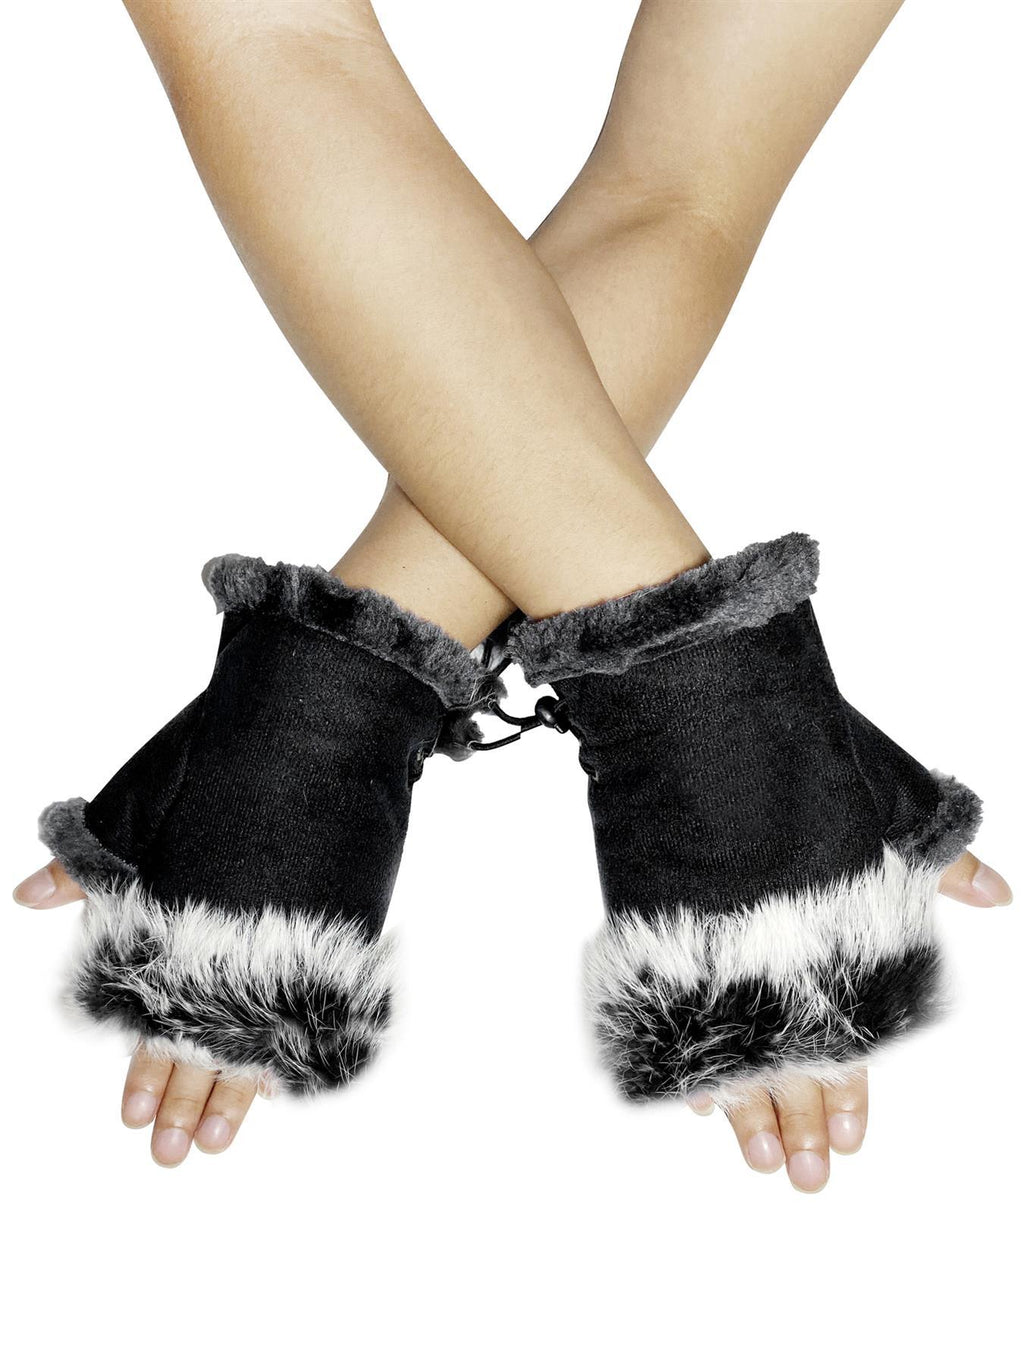 Plain Real Fur Fingerless Mittens Black - The Tulip Tree Chiddingstone